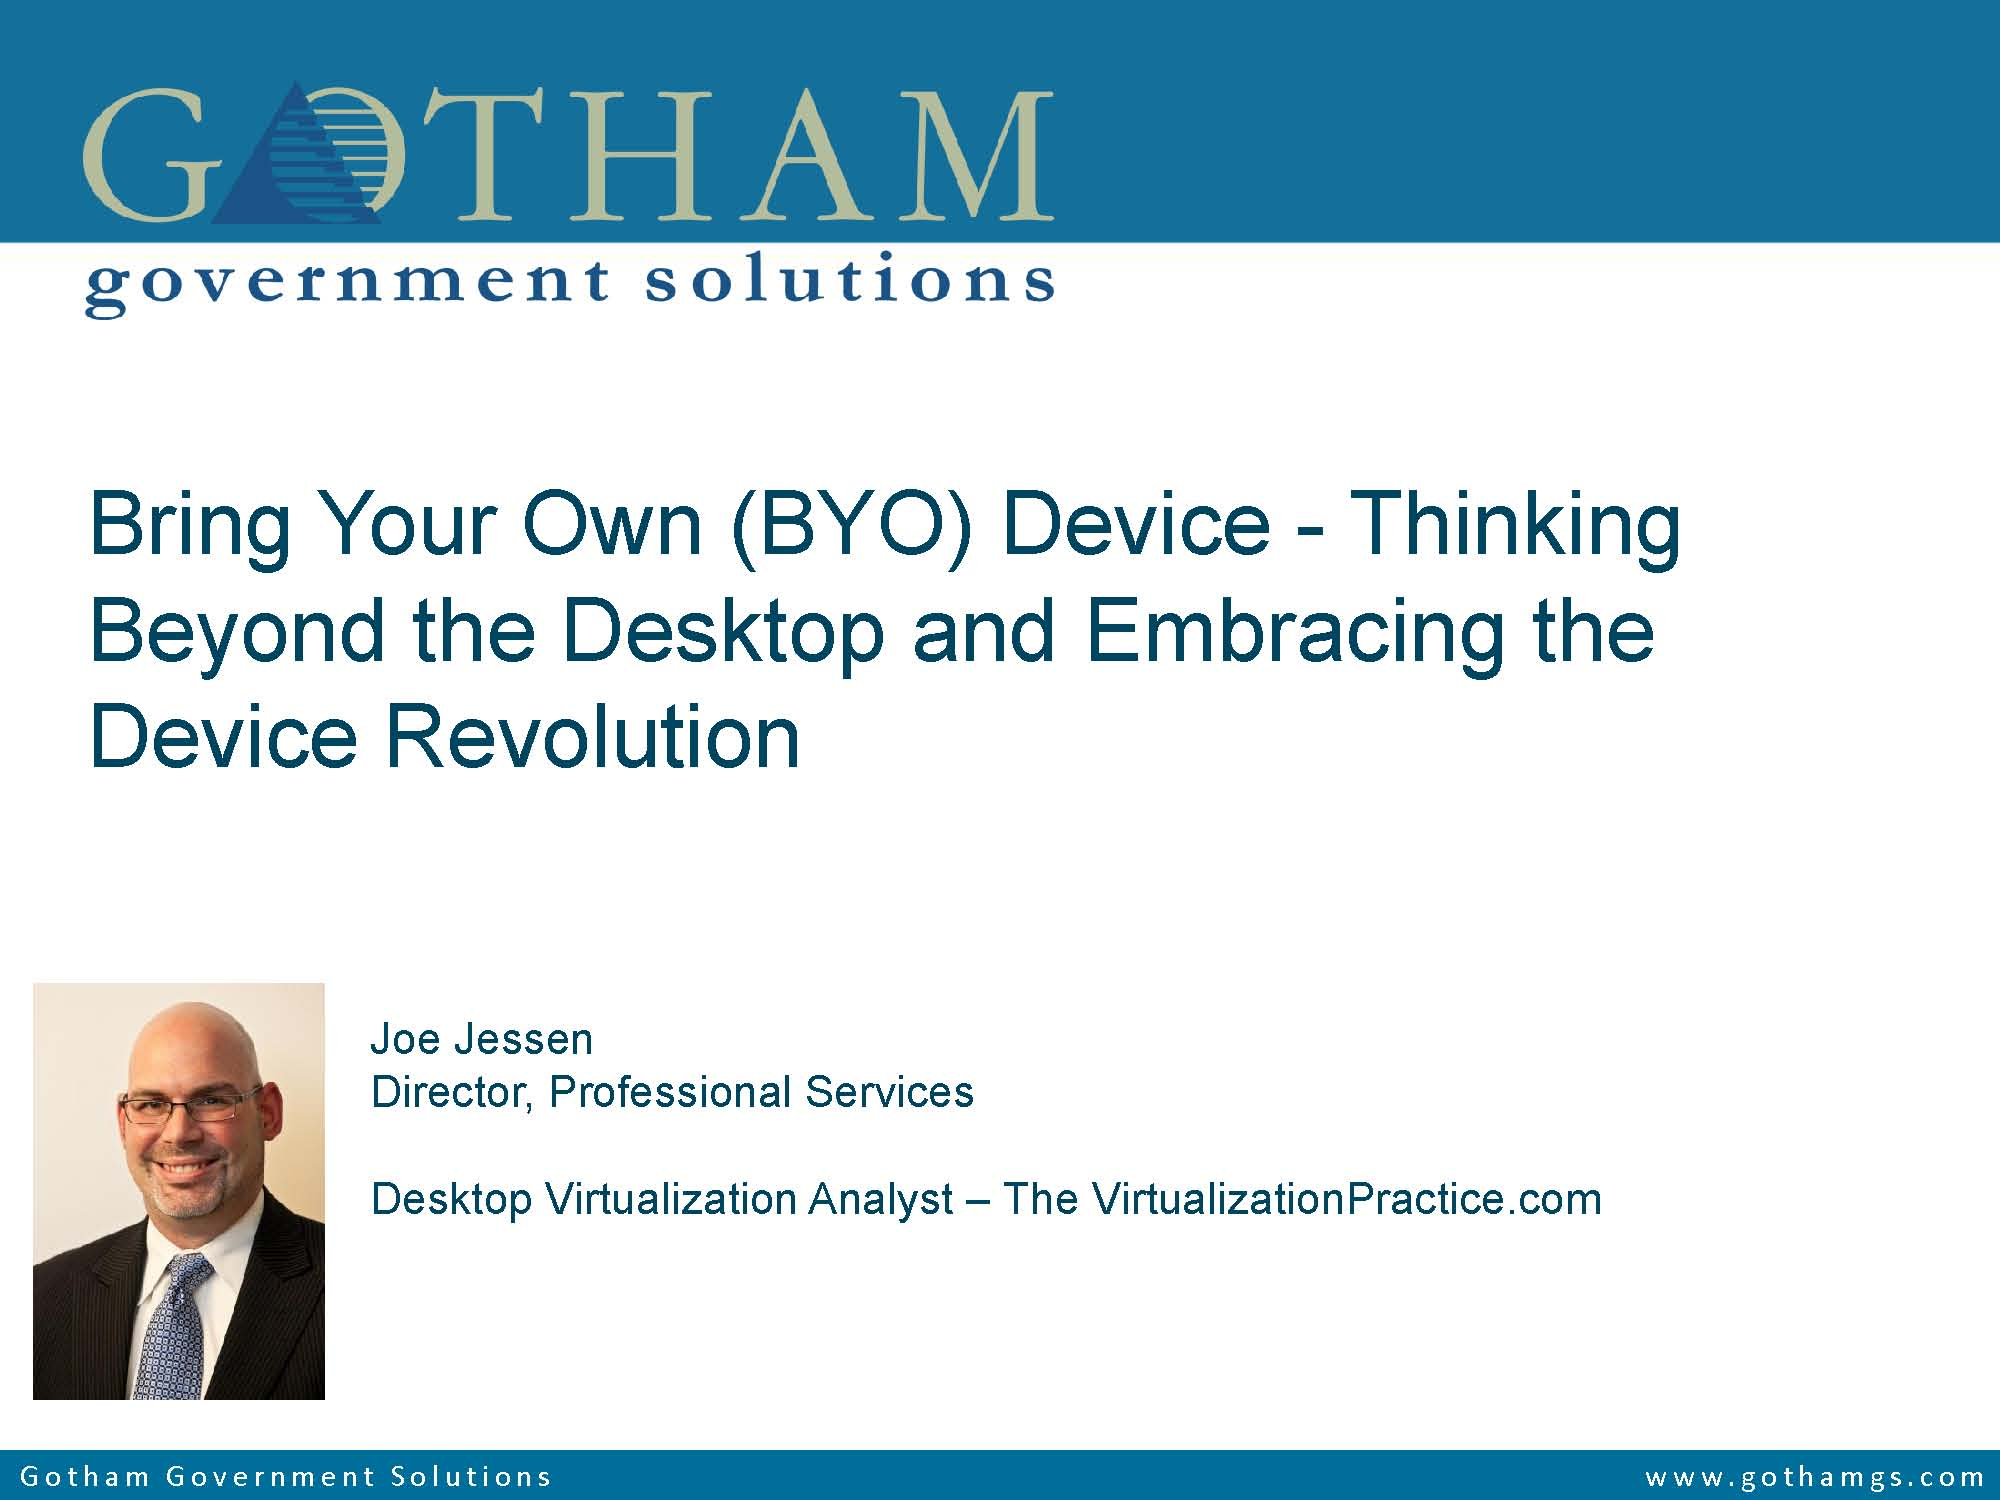 BYO Device - Embracing the Device Revolution